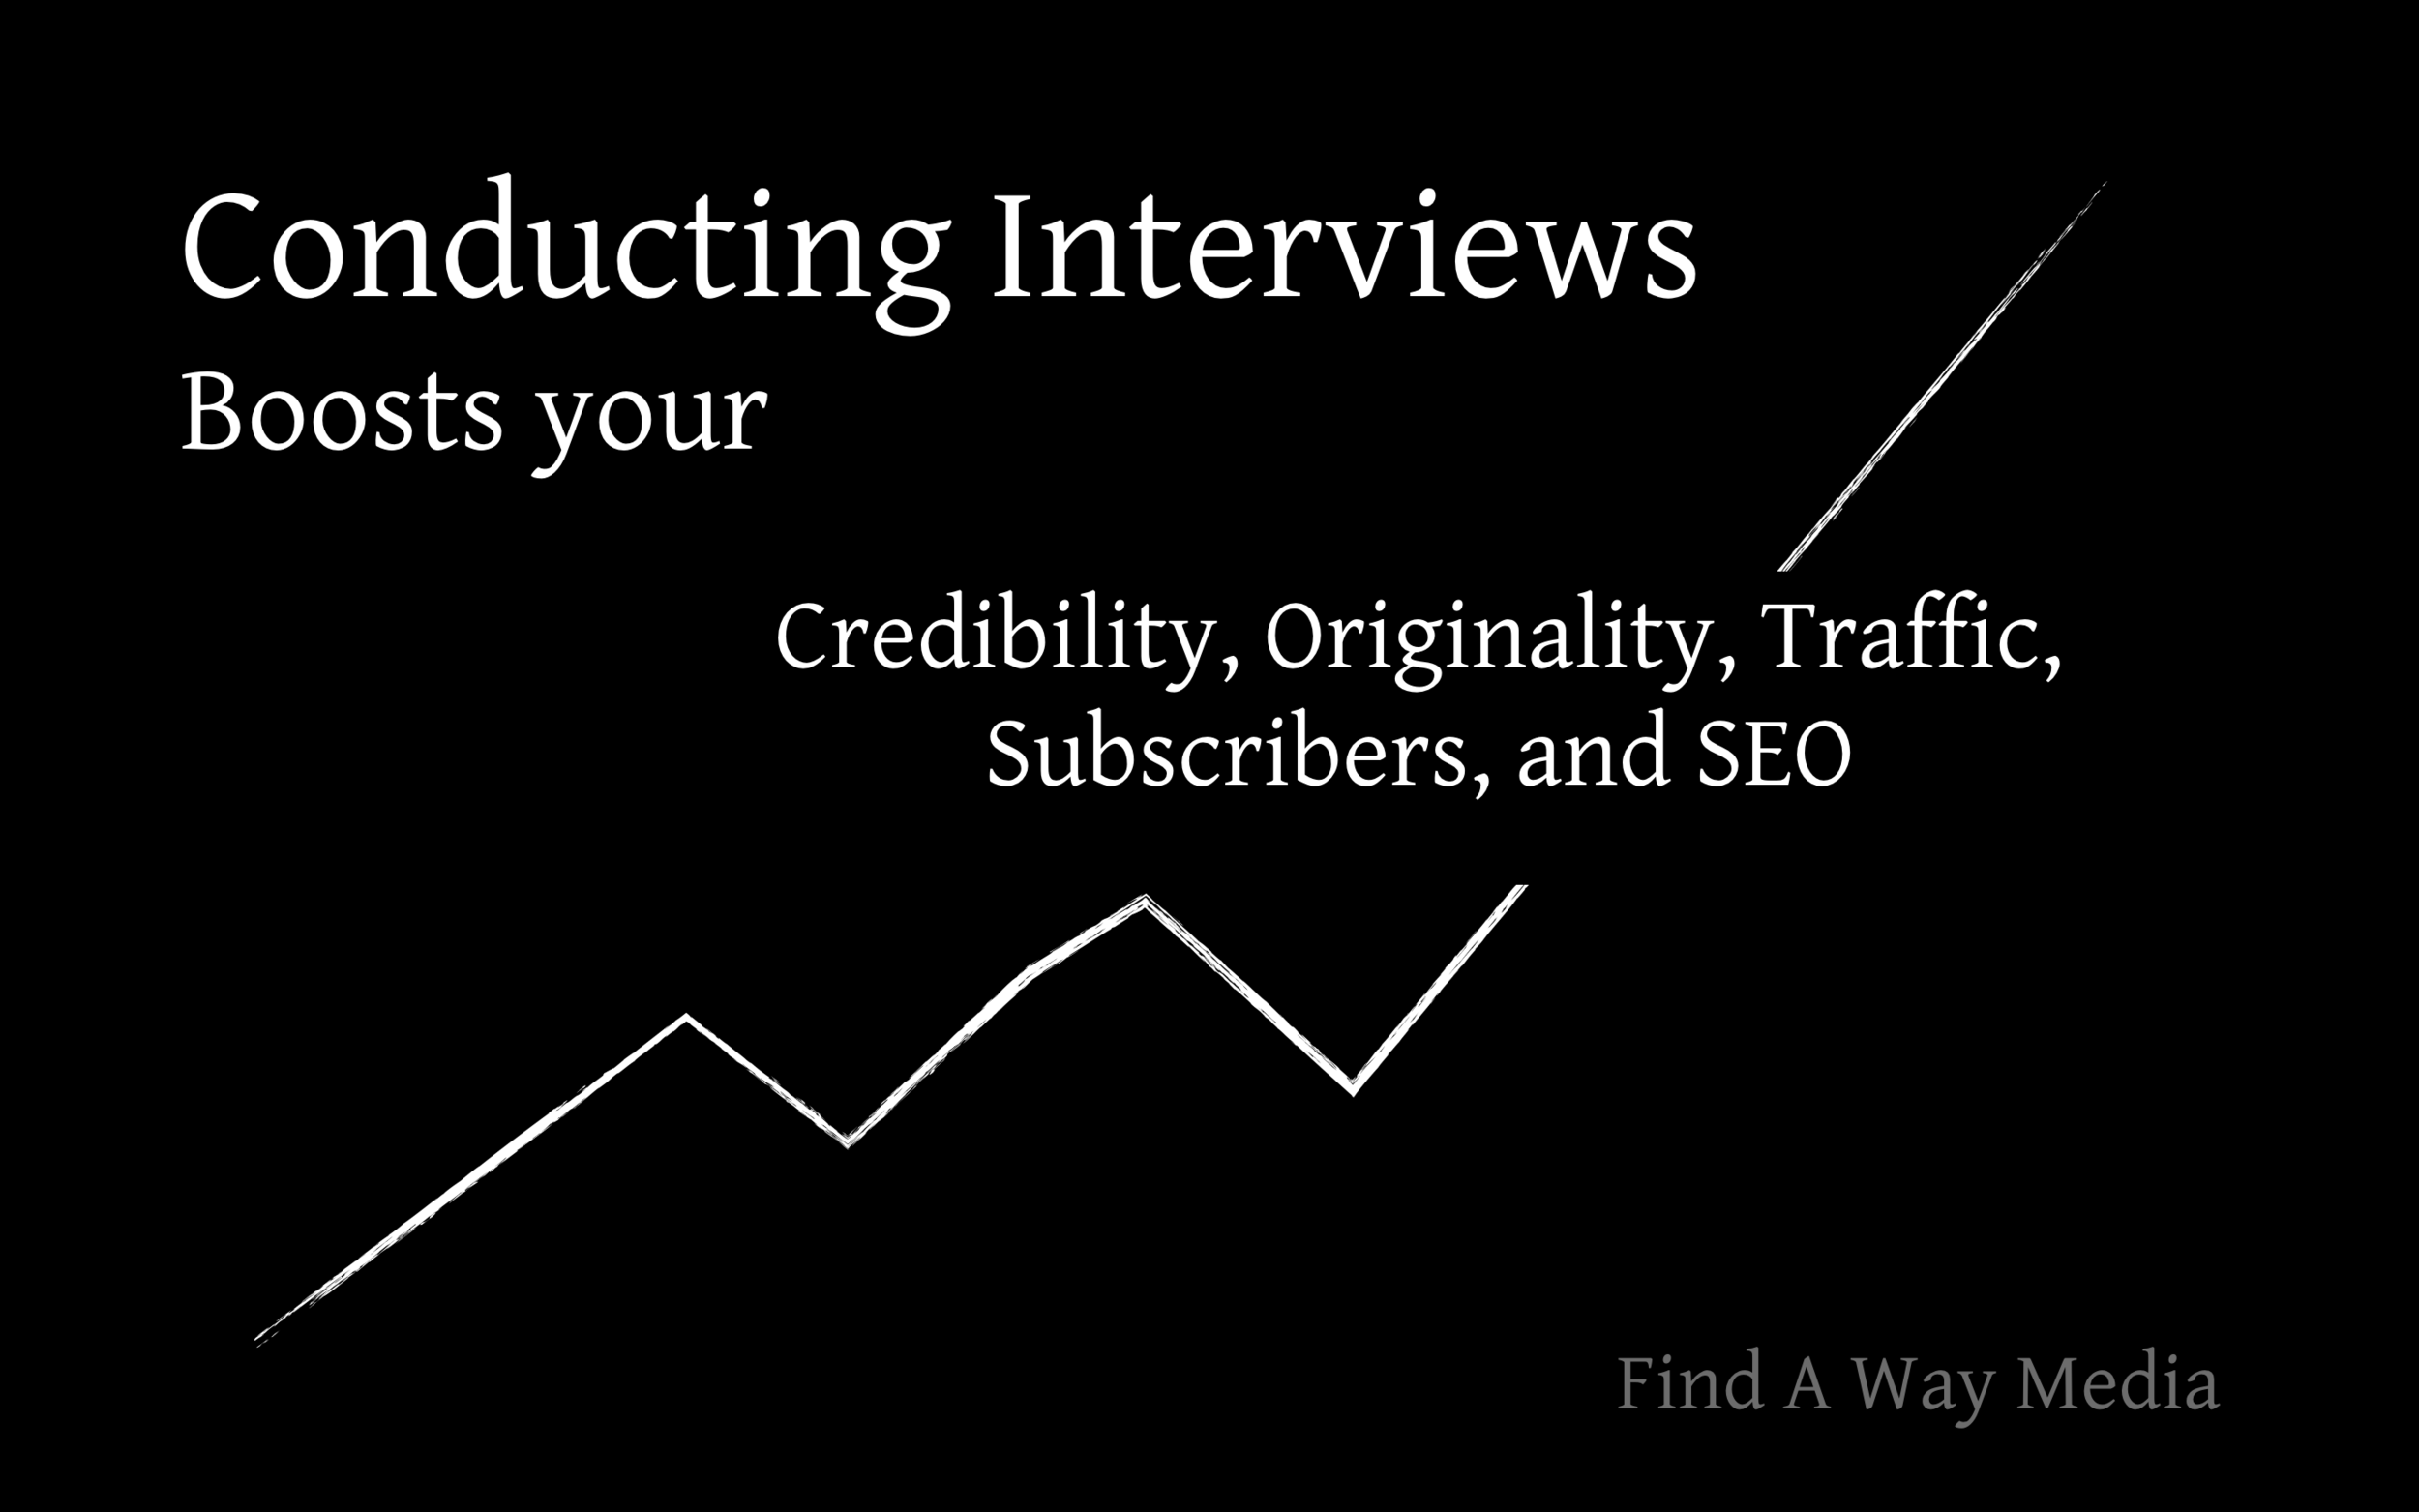 conducting interviews boost seo traffic and credibility find a way media